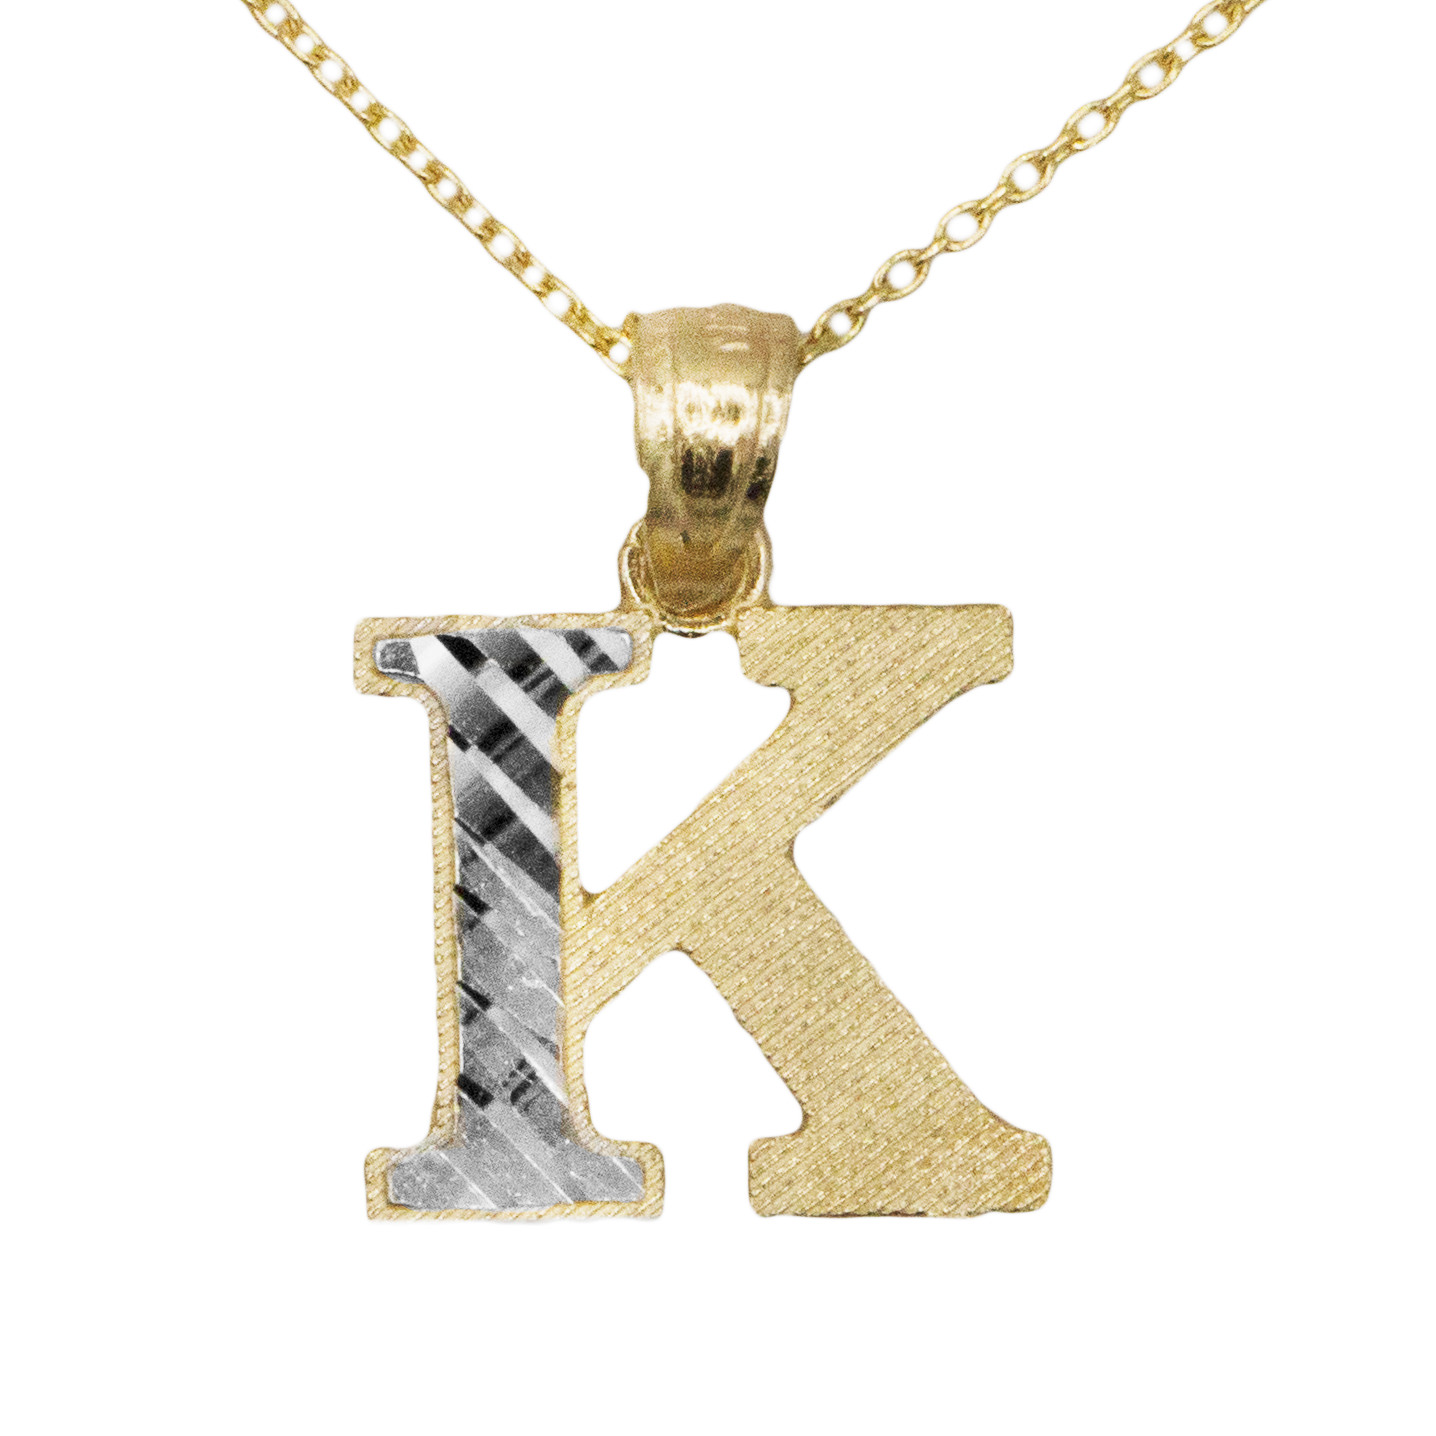 10k Yellow Gold Two Tone Letter K Initial with Diamond Cut Finish Pendant Necklace (No Chain)